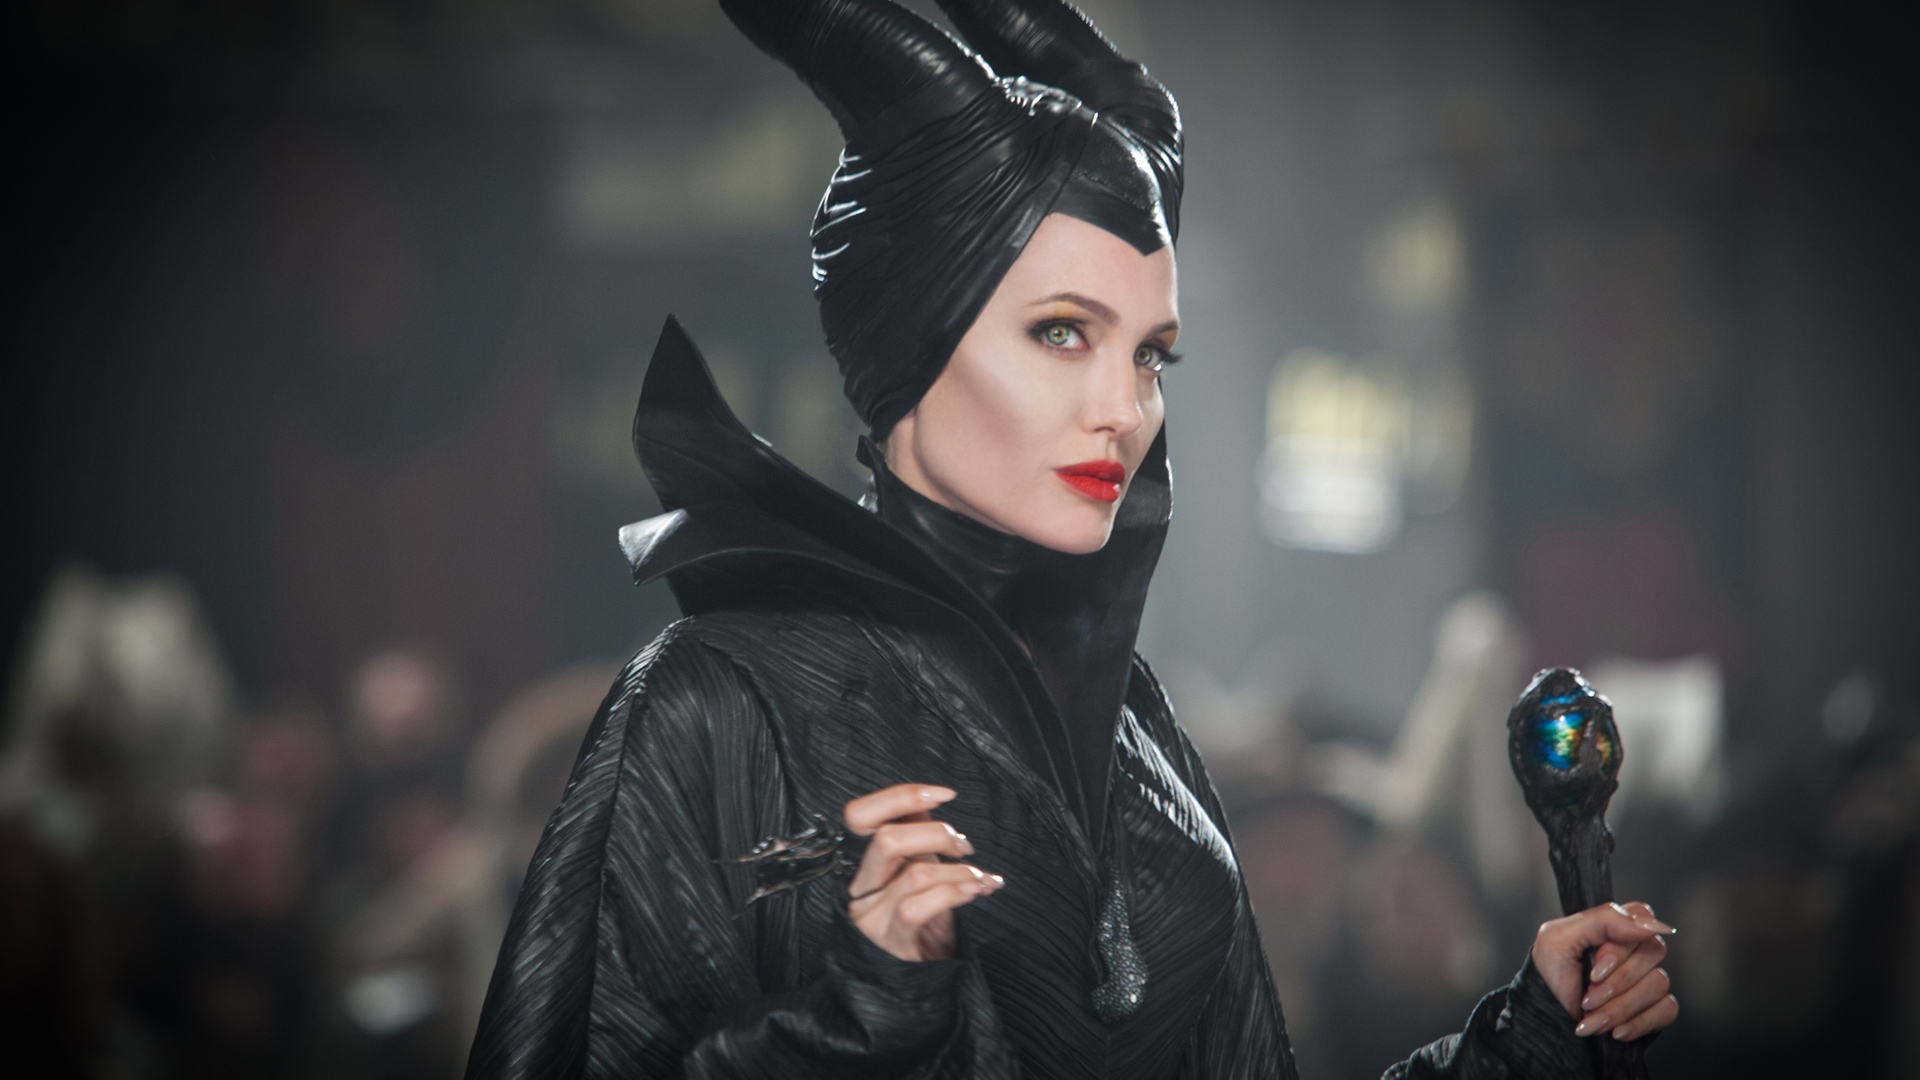 maleficent - photo #10